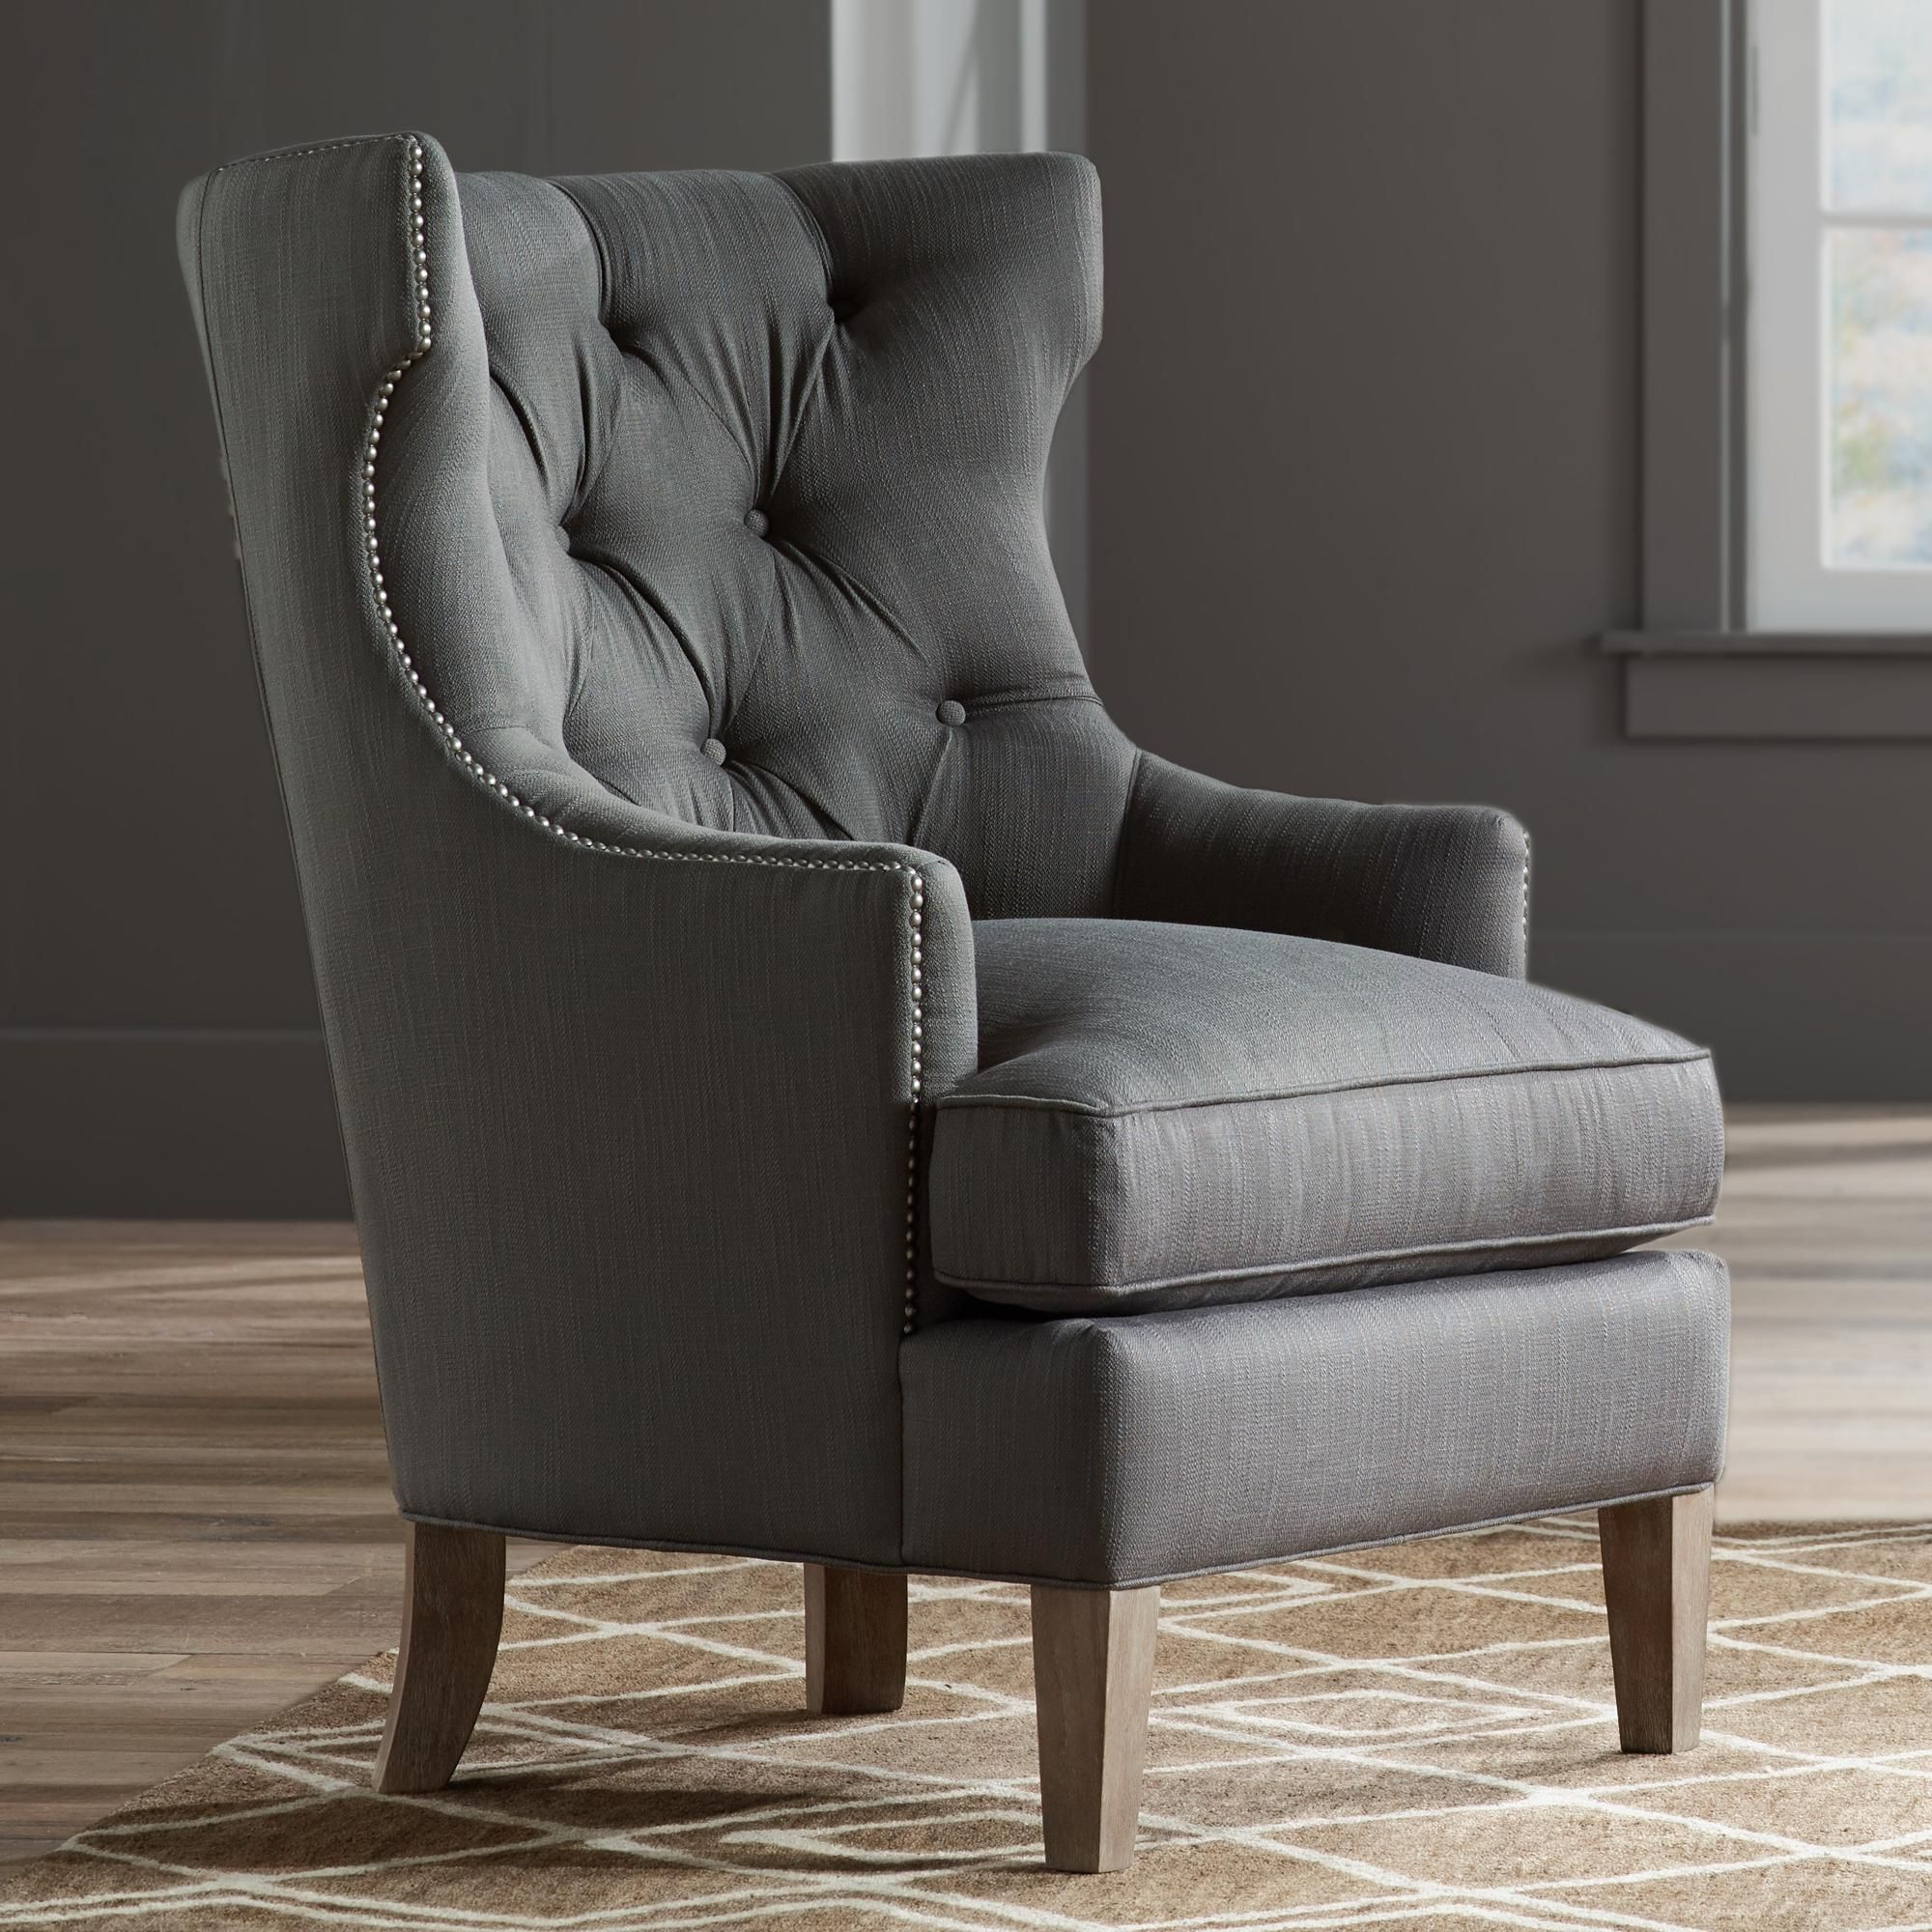 Reese Studio Charcoal High Back Accent Chair High Back Accent